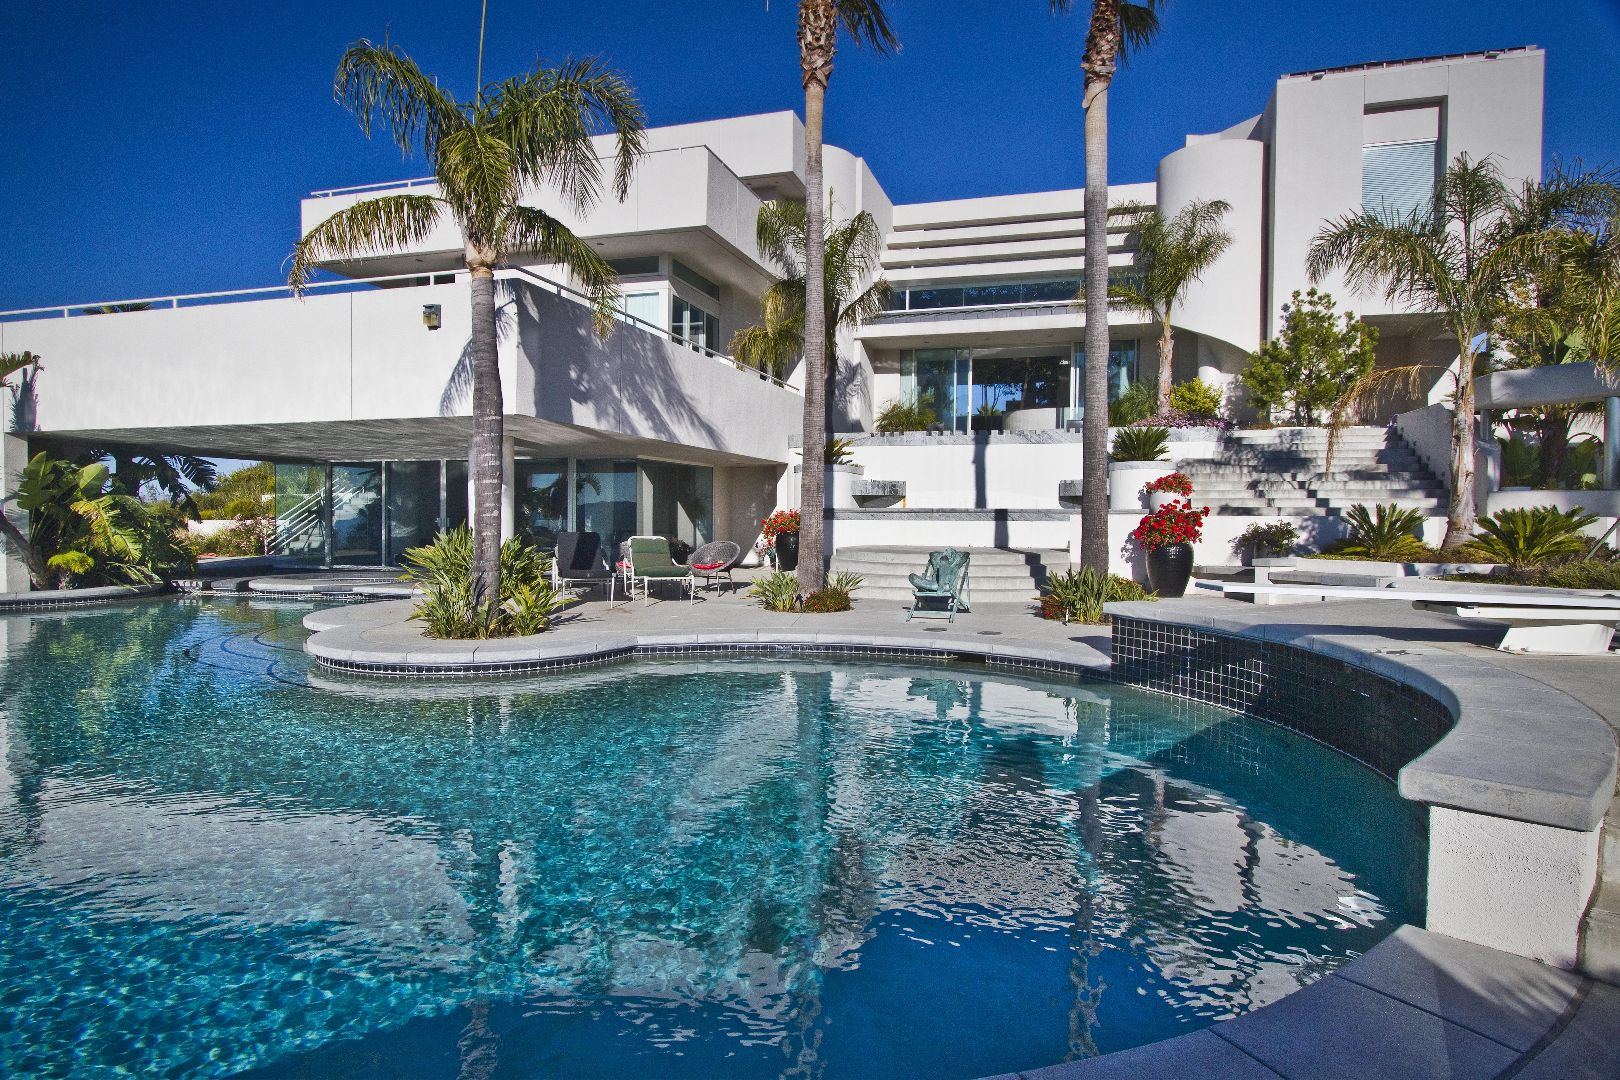 Silicon valley modern real estate homes for sale